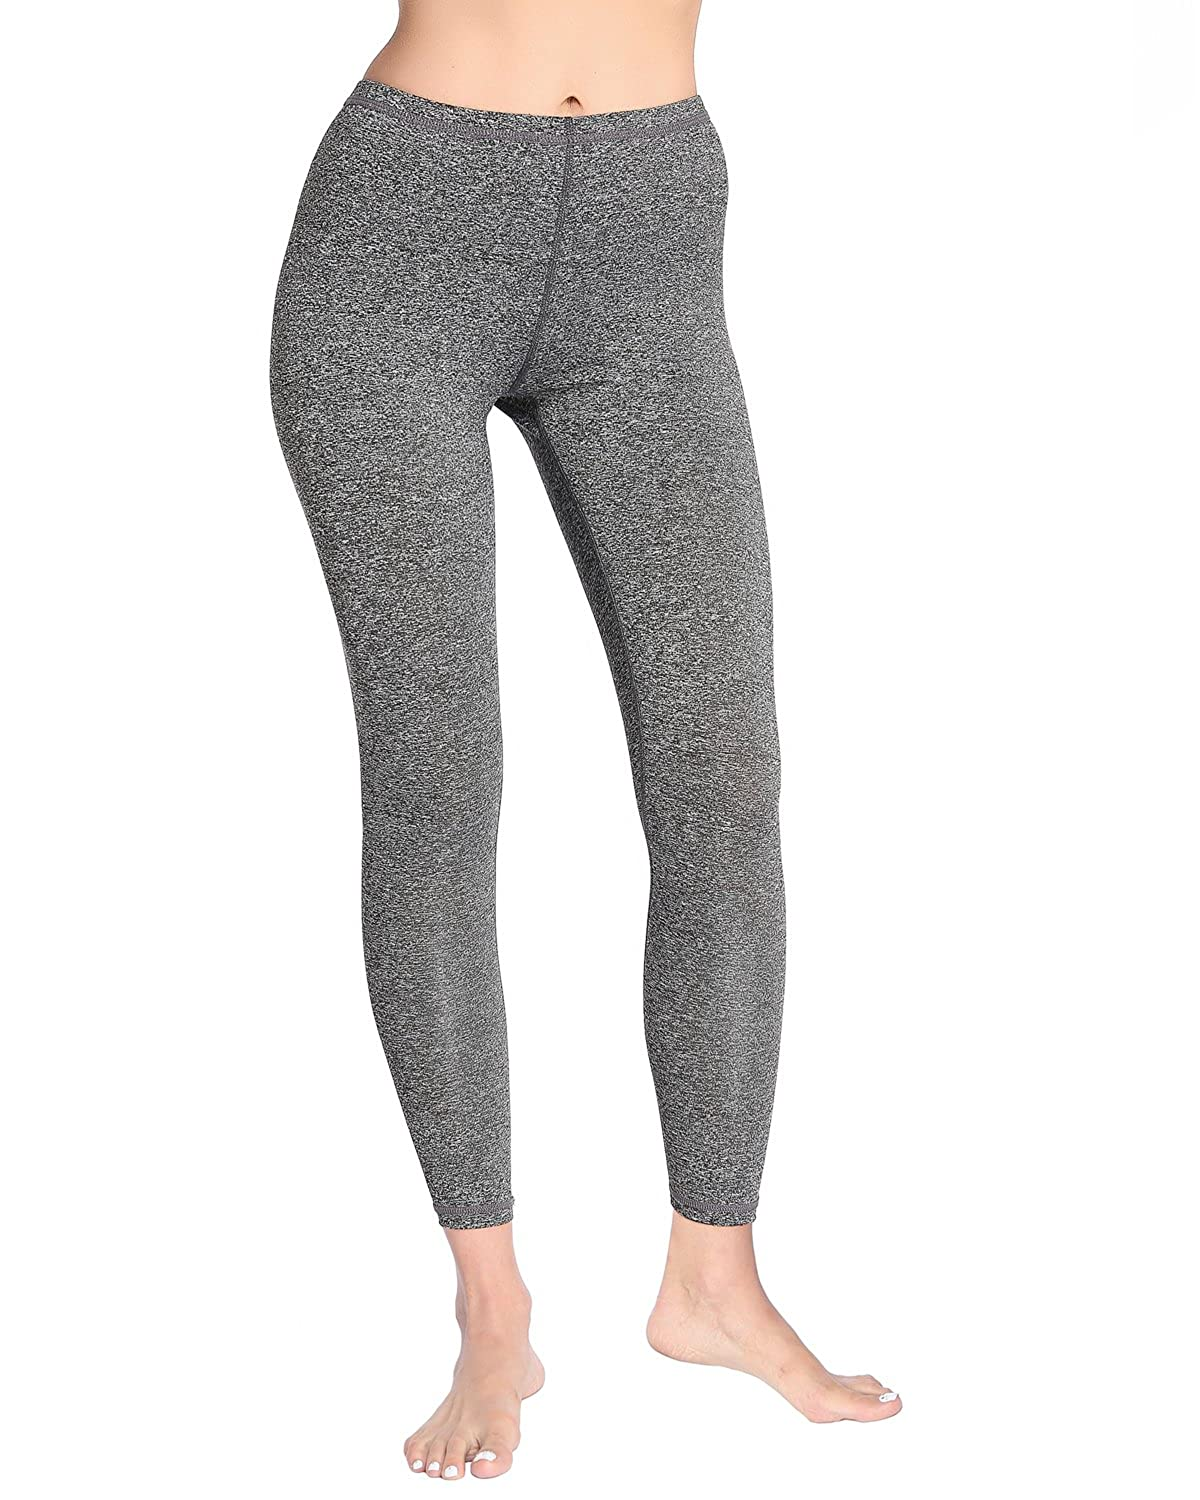 SOUTEAM High Waisted Leggings-20 Colors-Super Soft Full Length Opaque Slim